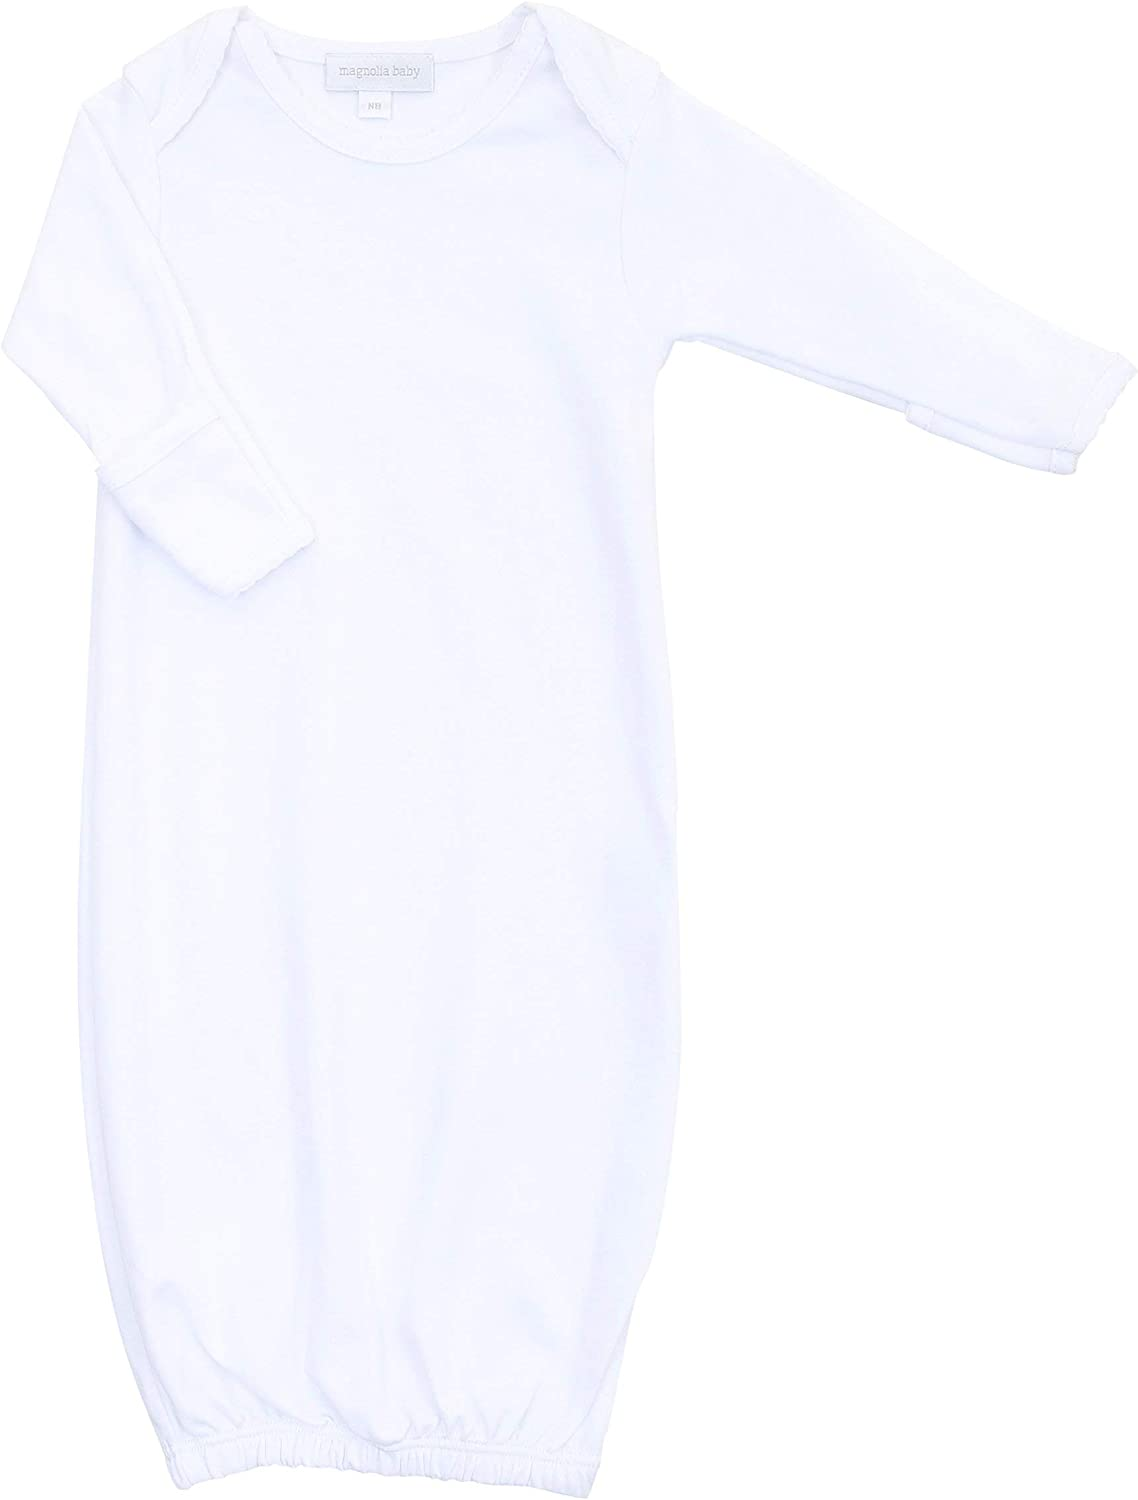 Magnolia Baby Unisex Baby Solid Essentials Lap Gown White White